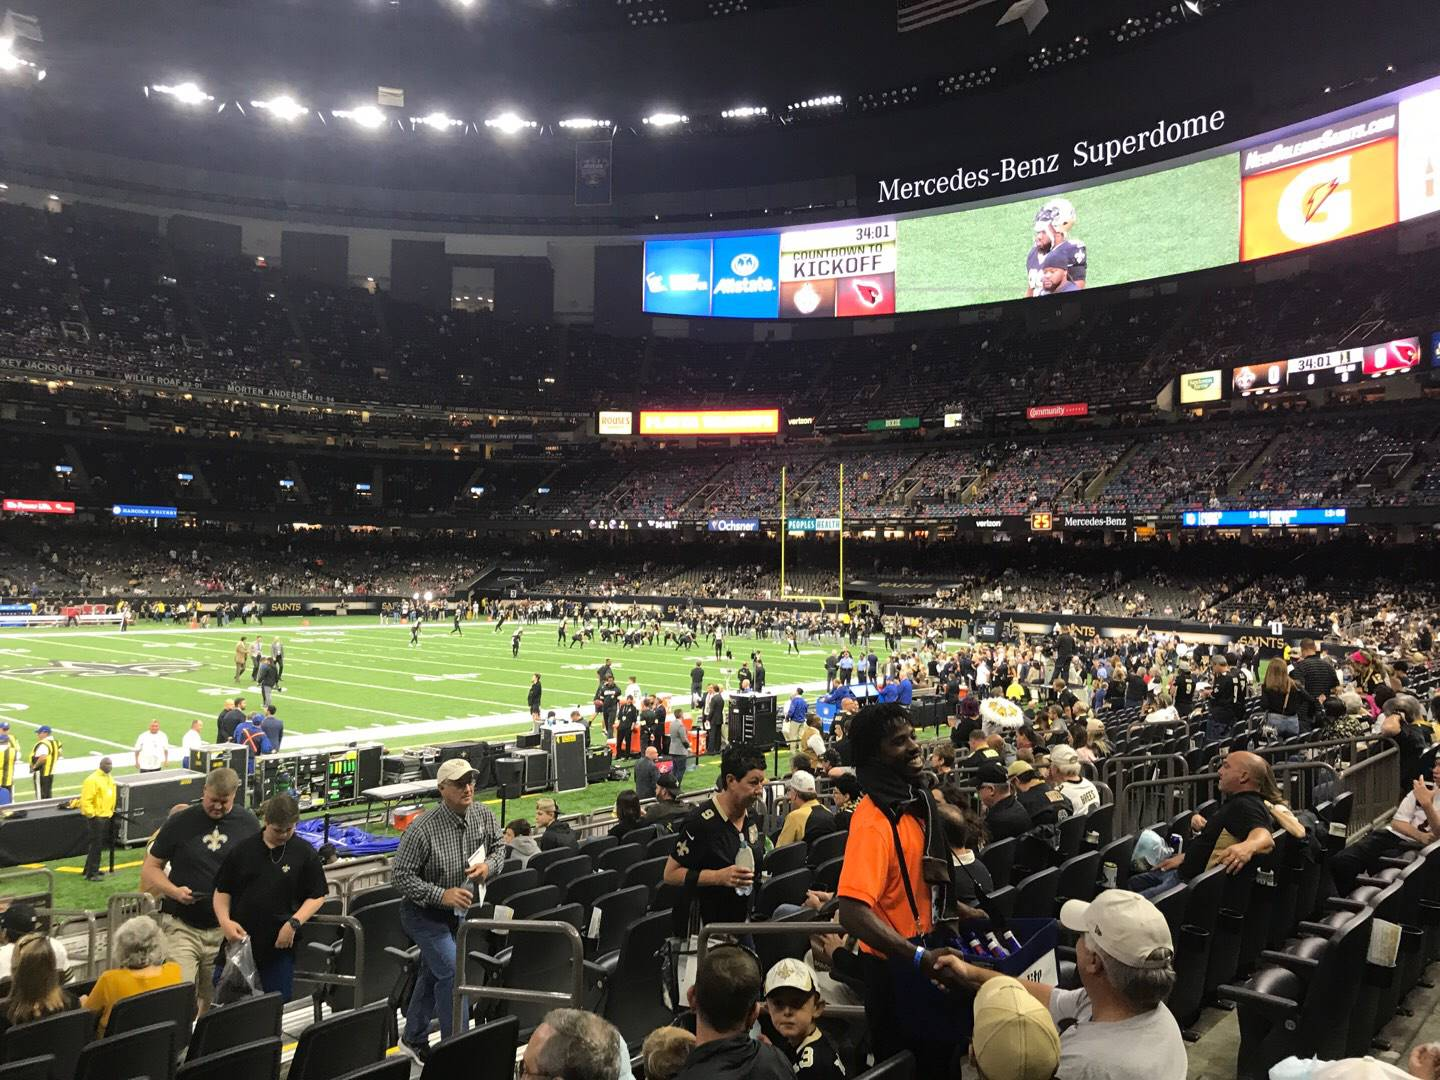 Caesars Superdome Section 144 Row 14 Seat 7